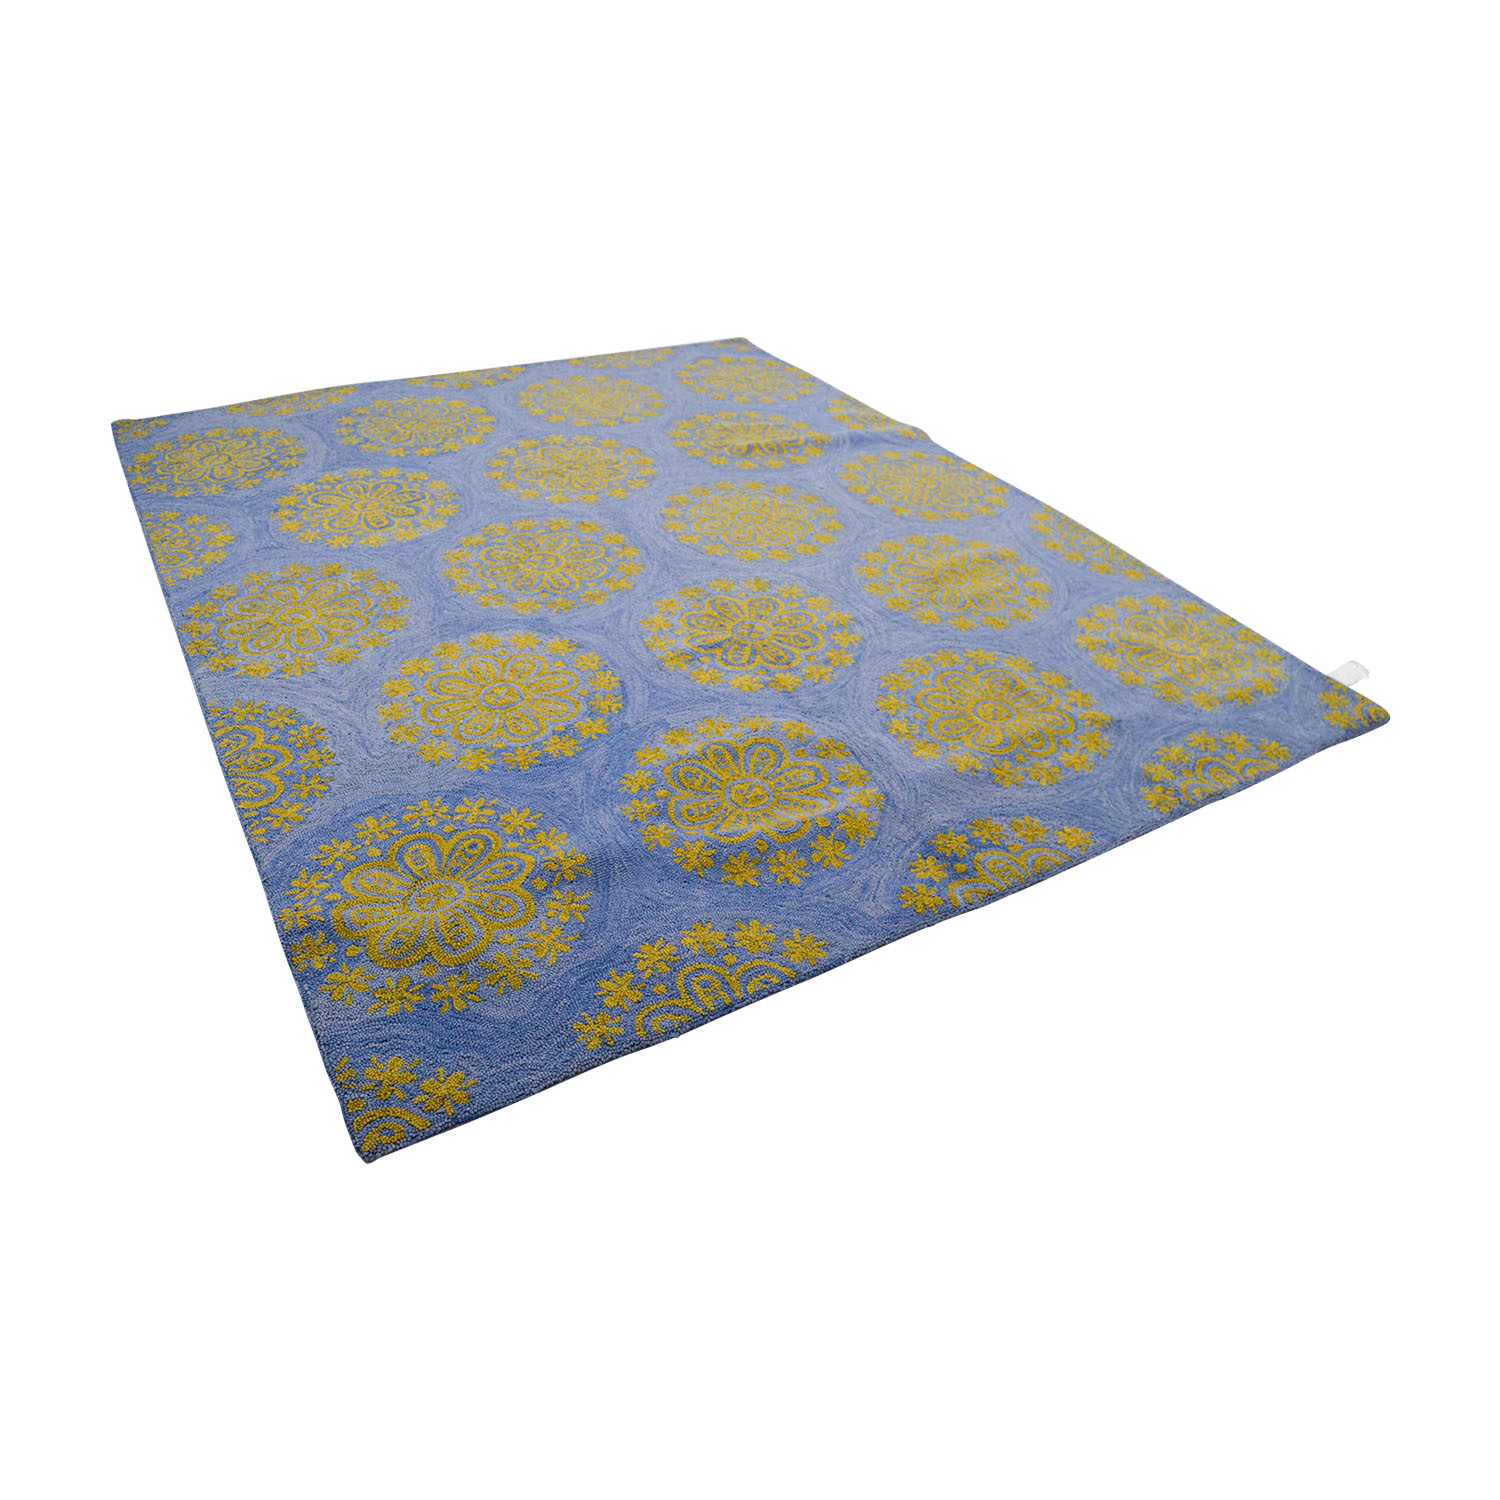 Obeetee Hand Hooked Blue and Yellow Medallion Rug sale